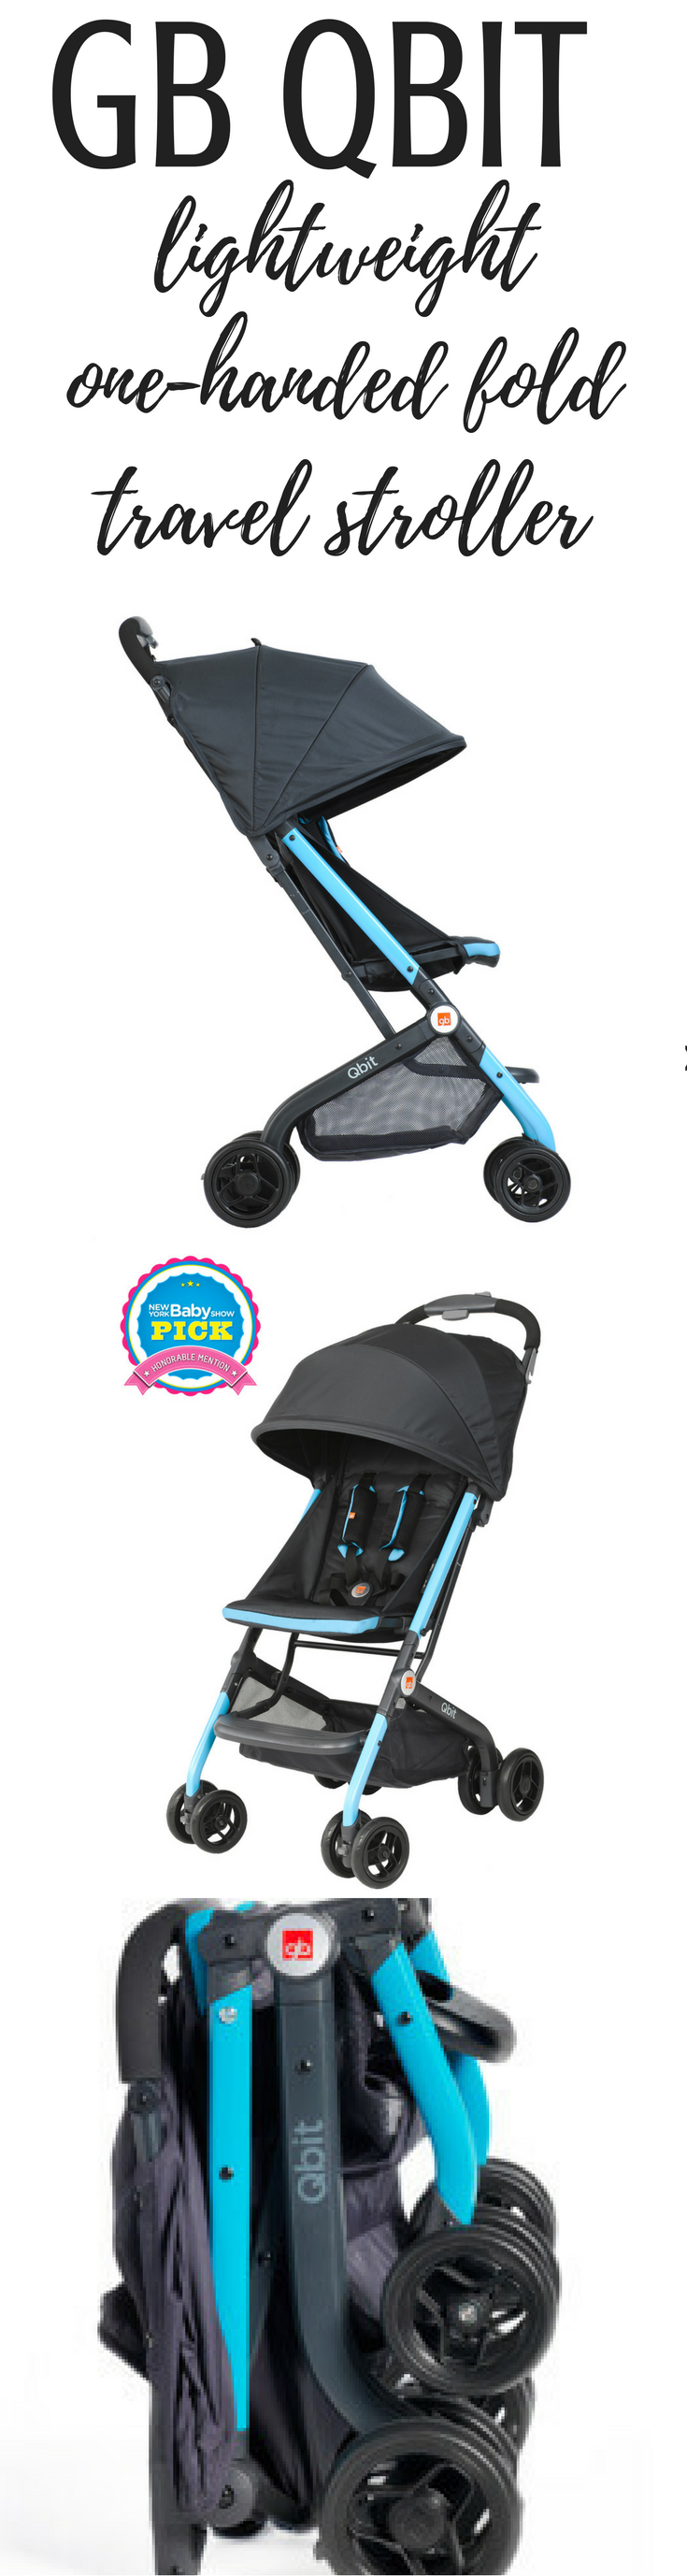 GB QBit reclining travel stroller with one handed fold upright fold  sc 1 st  The Very Best Baby Stuff & GBu0027s Qbit LTE - The Ultimate Lightweight Reclining Travel Stroller ... islam-shia.org